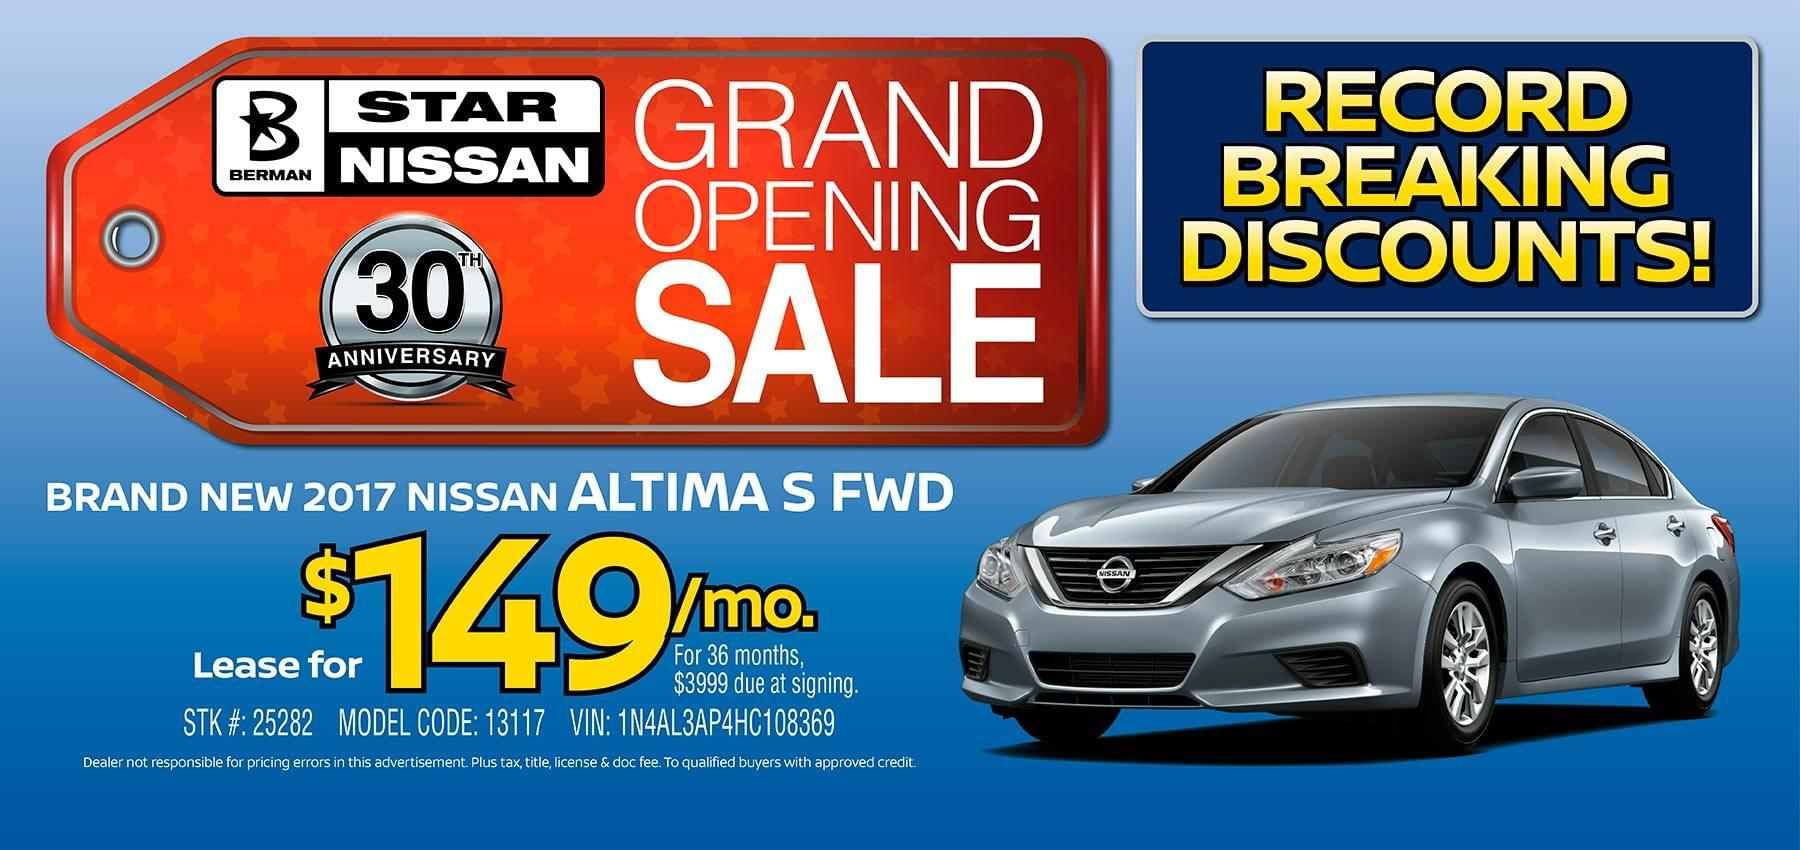 April Star Nissan Grand Opening Sale 2017 Nissan Altima Offer